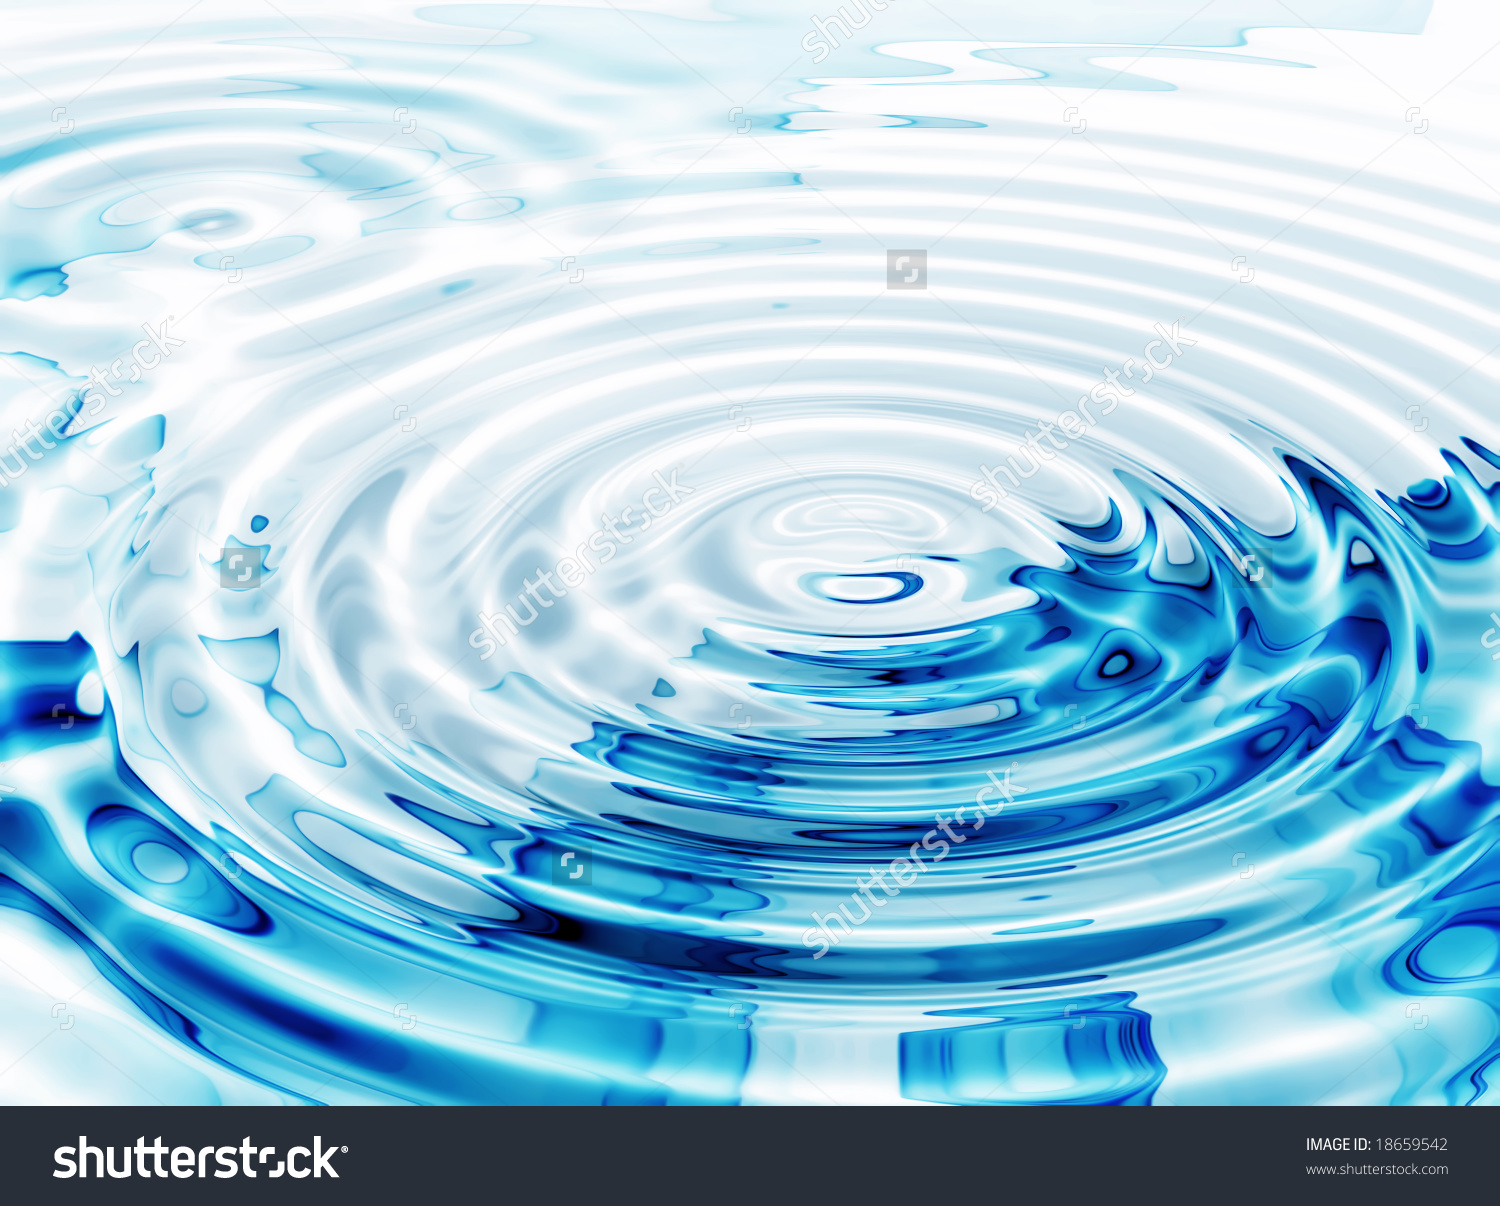 Illustration Crystal Clear Water Ripples Stock Illustration.